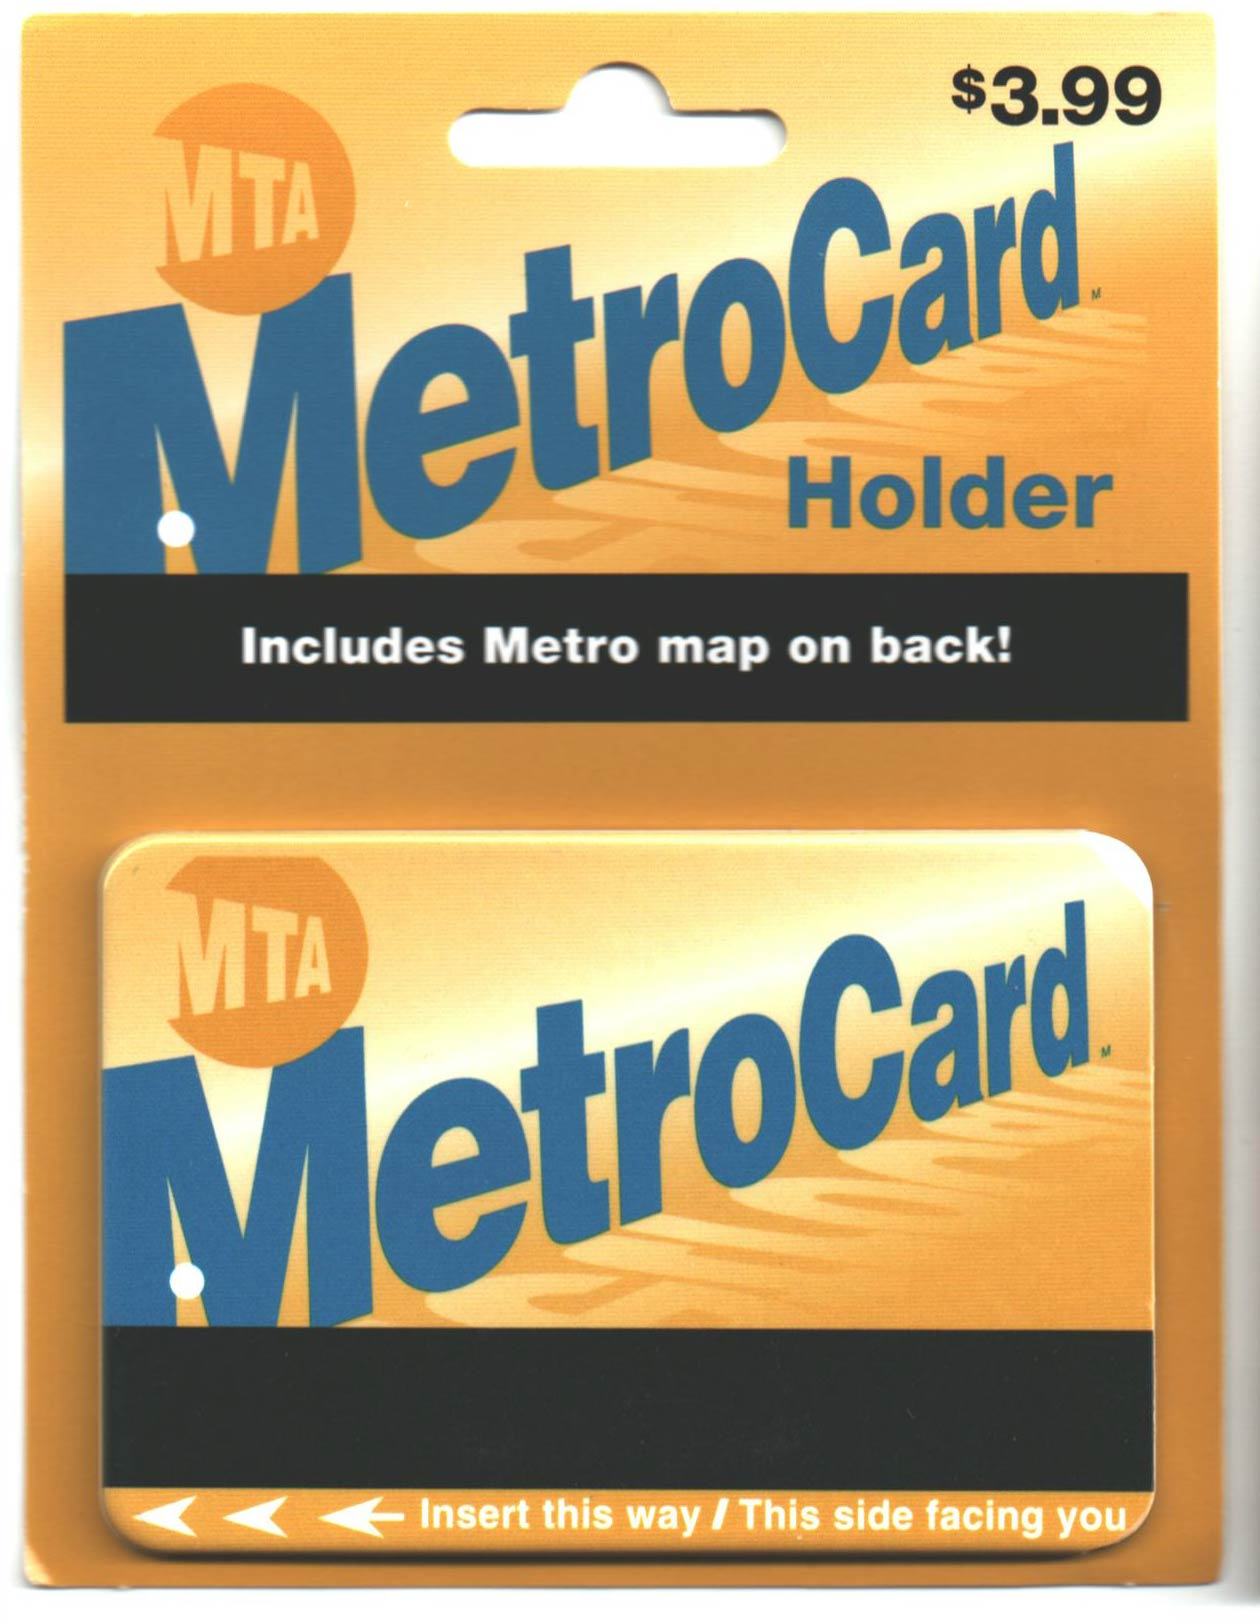 NY City Transit Metrocard Holder